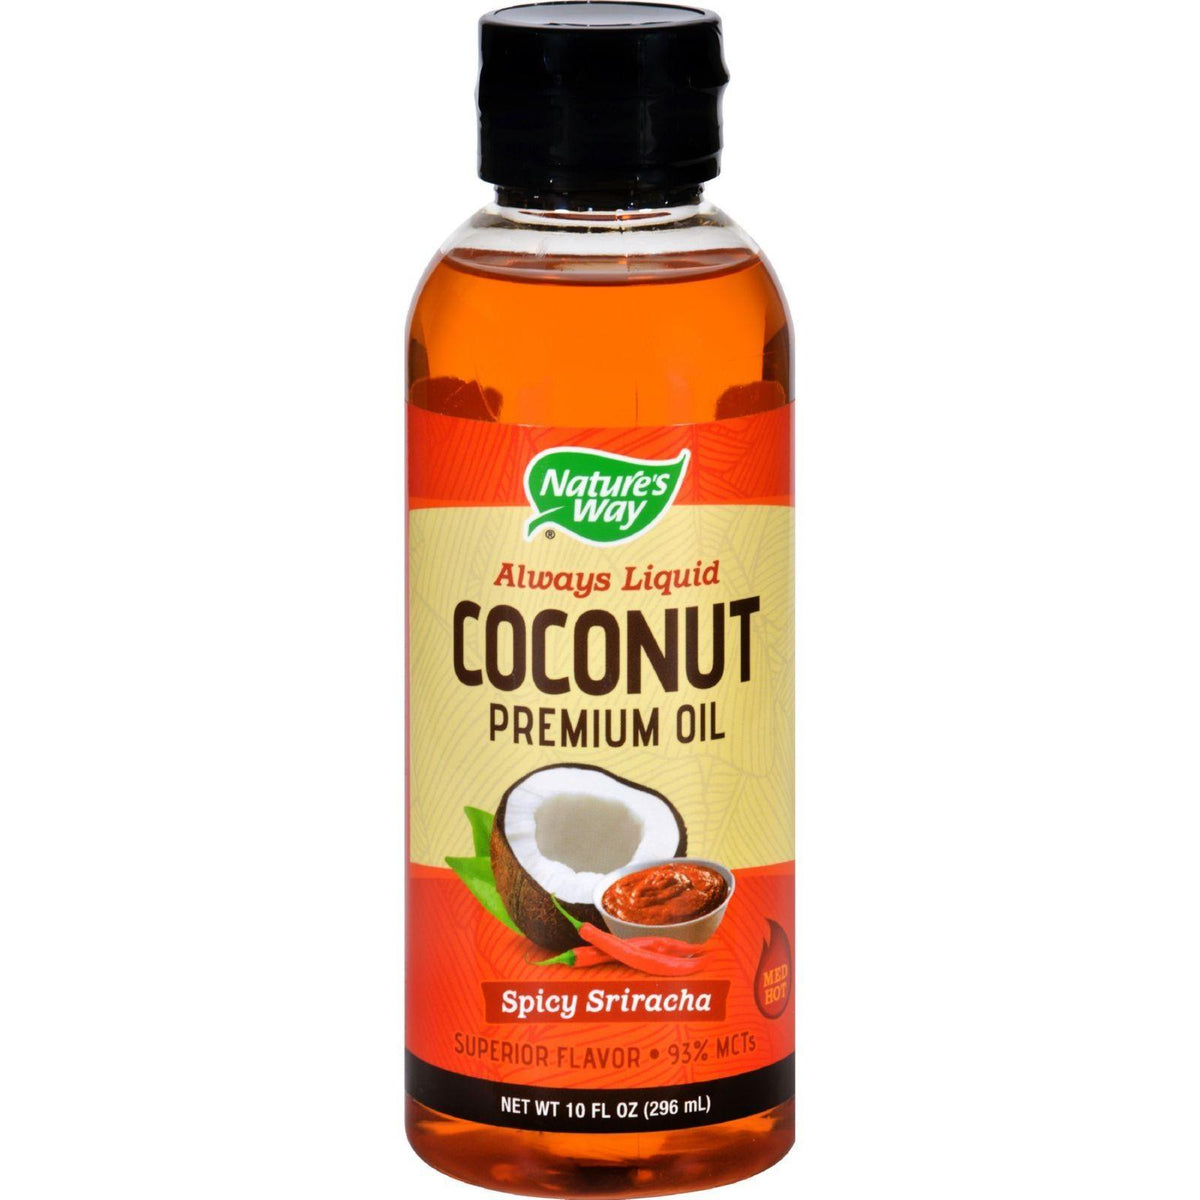 Coconut Oil Spicy Sriracha, Liquid